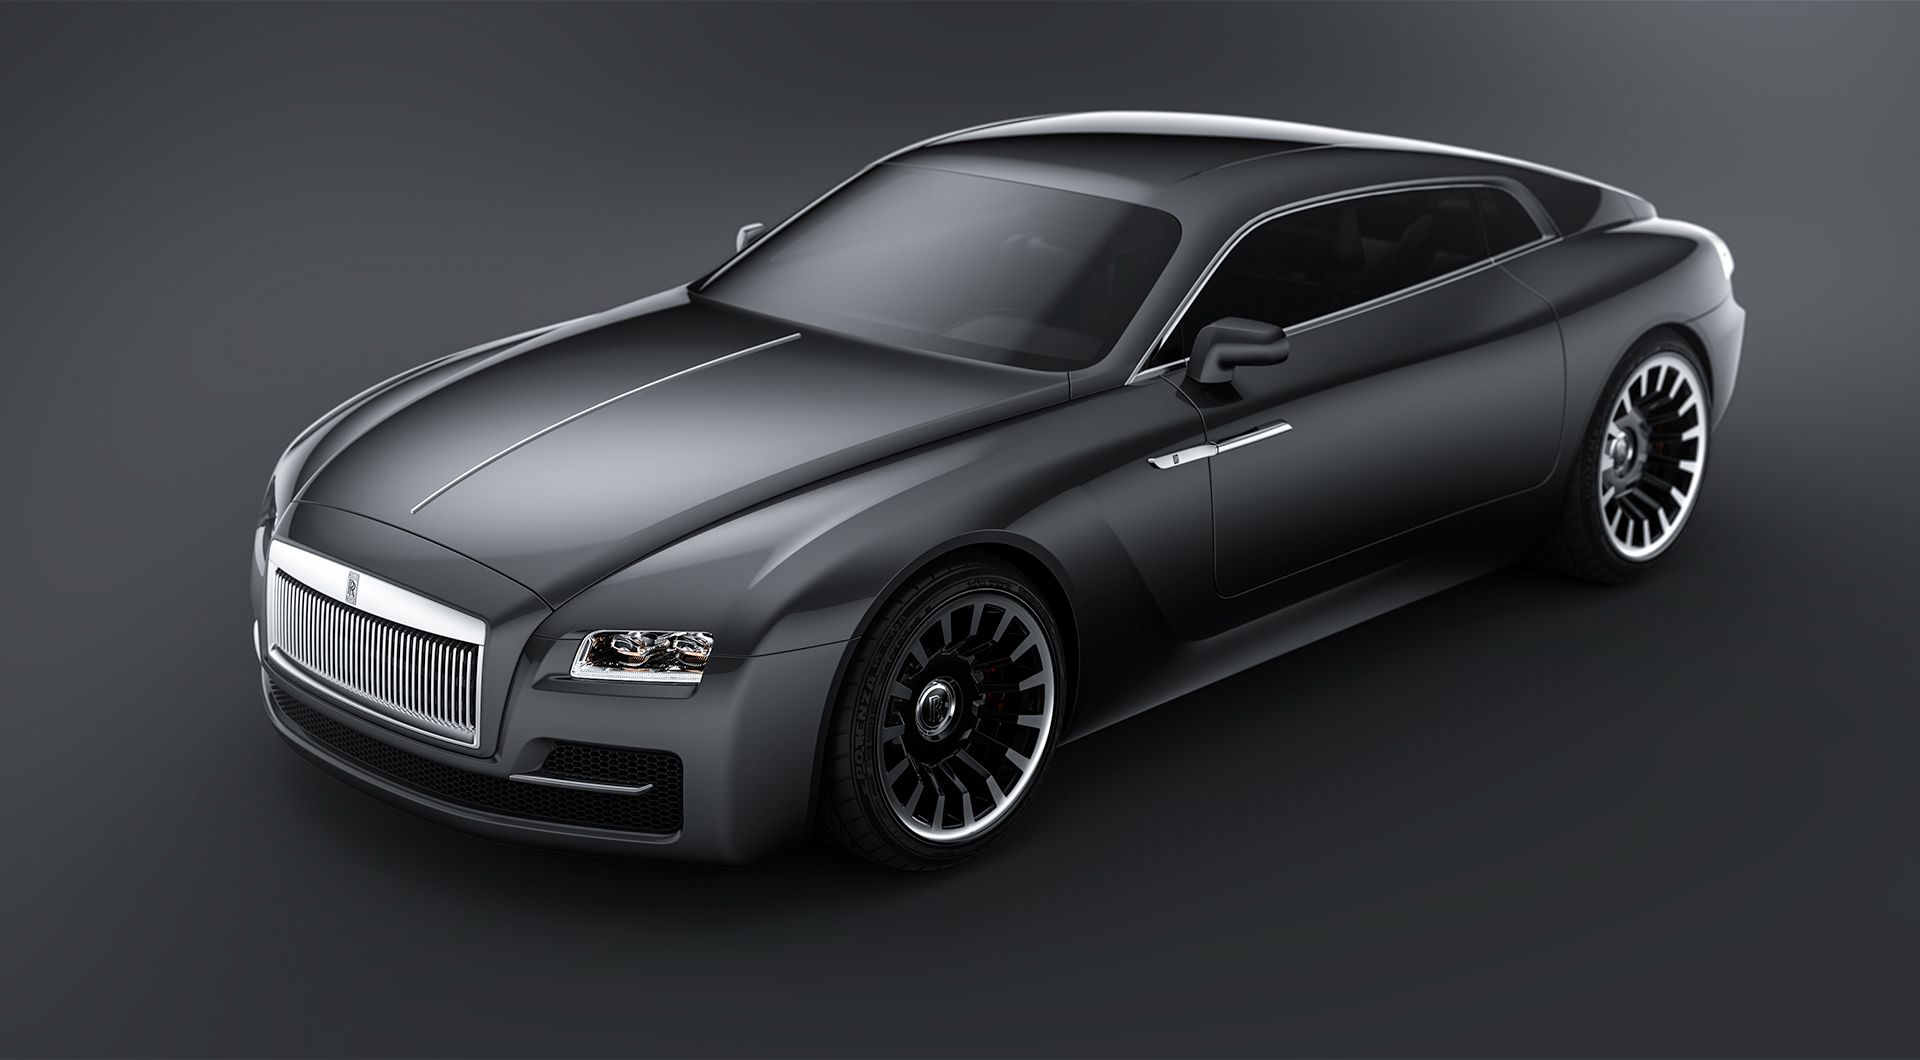 Rolls-Royce coupe is a luxury car specially designed for the police